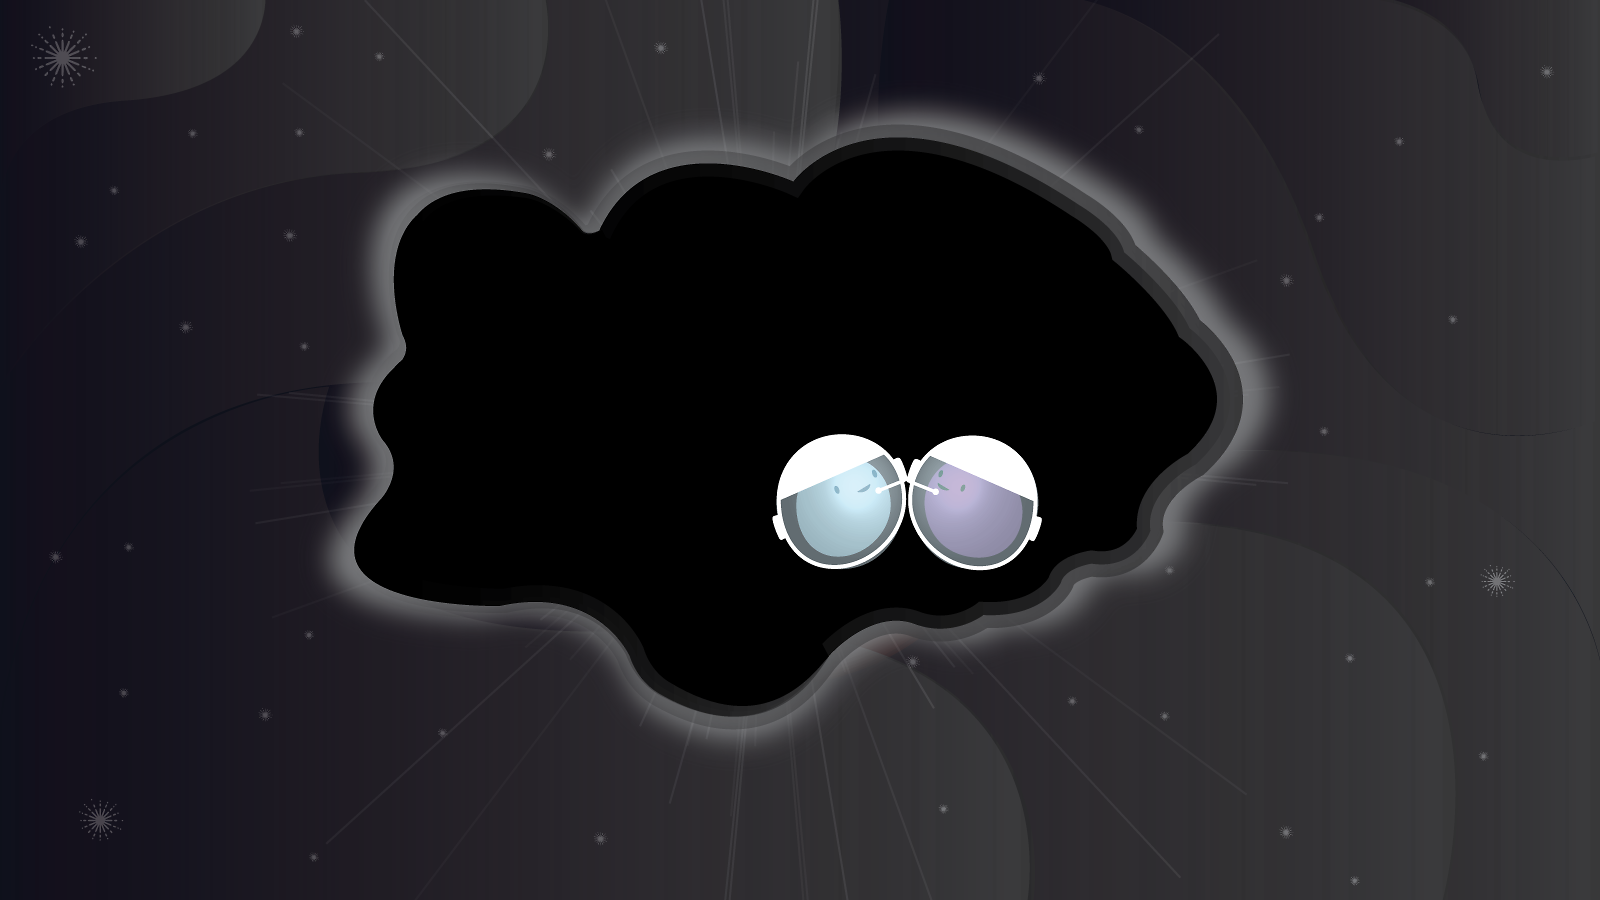 Illustration of two particles wearing space helmets meeting in a cloud of dark matter